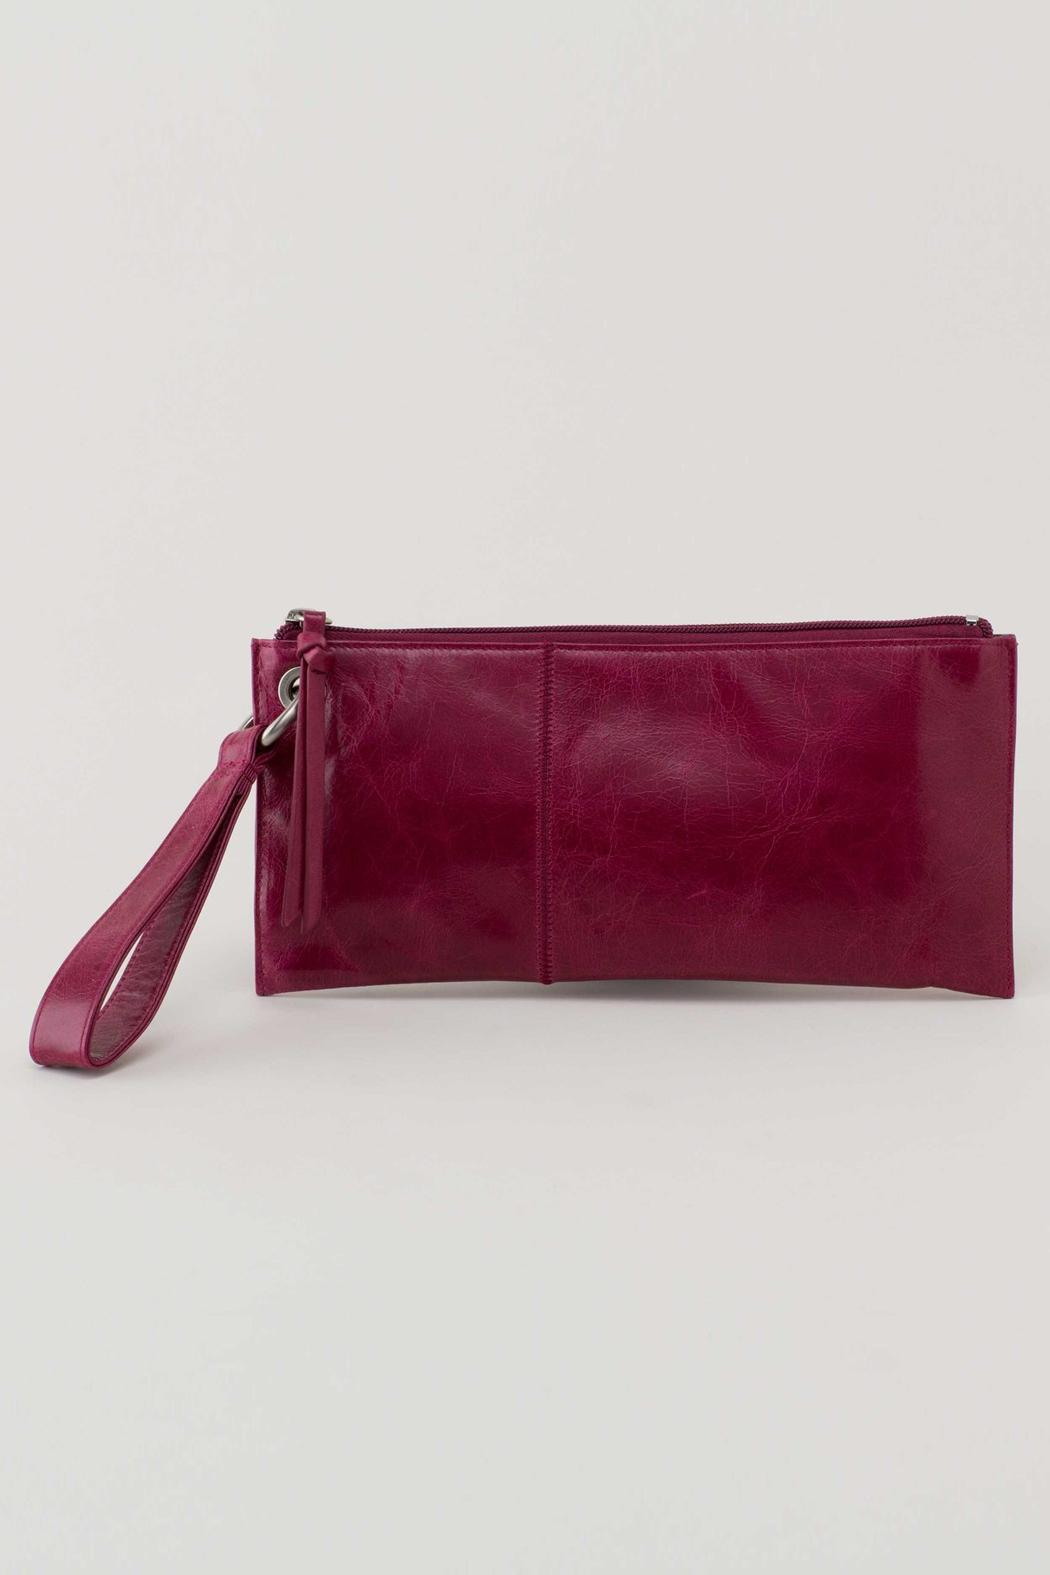 VIDA Leather Statement Clutch - HARBOR - LEATHER CLUTCH by VIDA cKIz8nmvRC